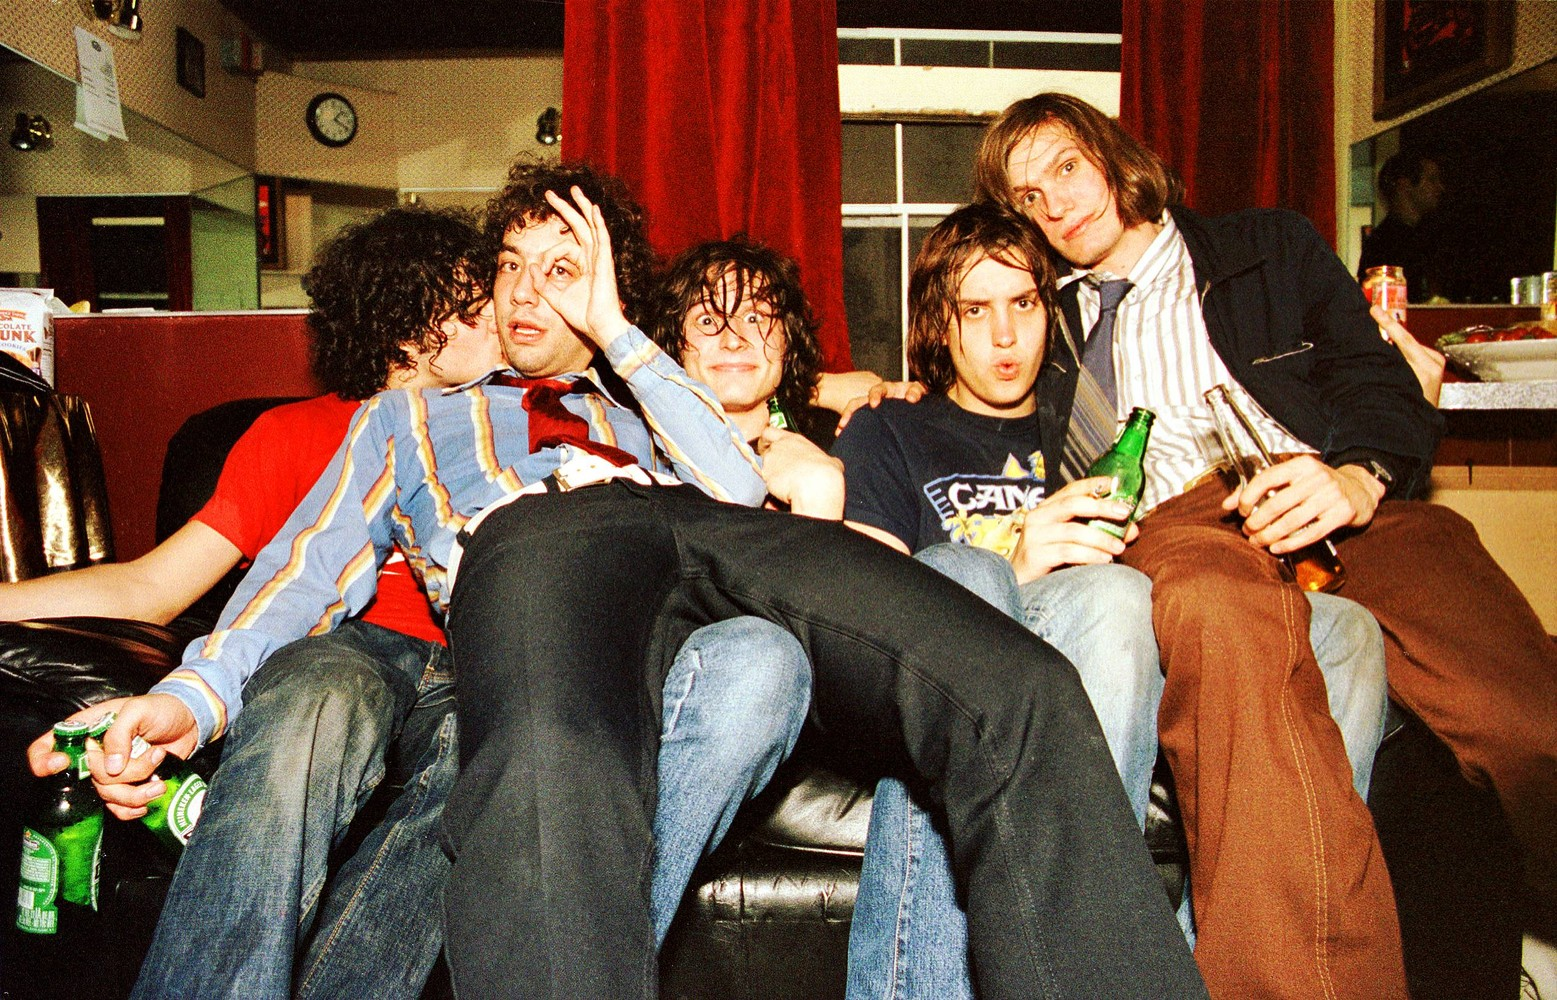 The Strokes: Our 2003 Cover Story, <i>The Rebirth of Cool</i>